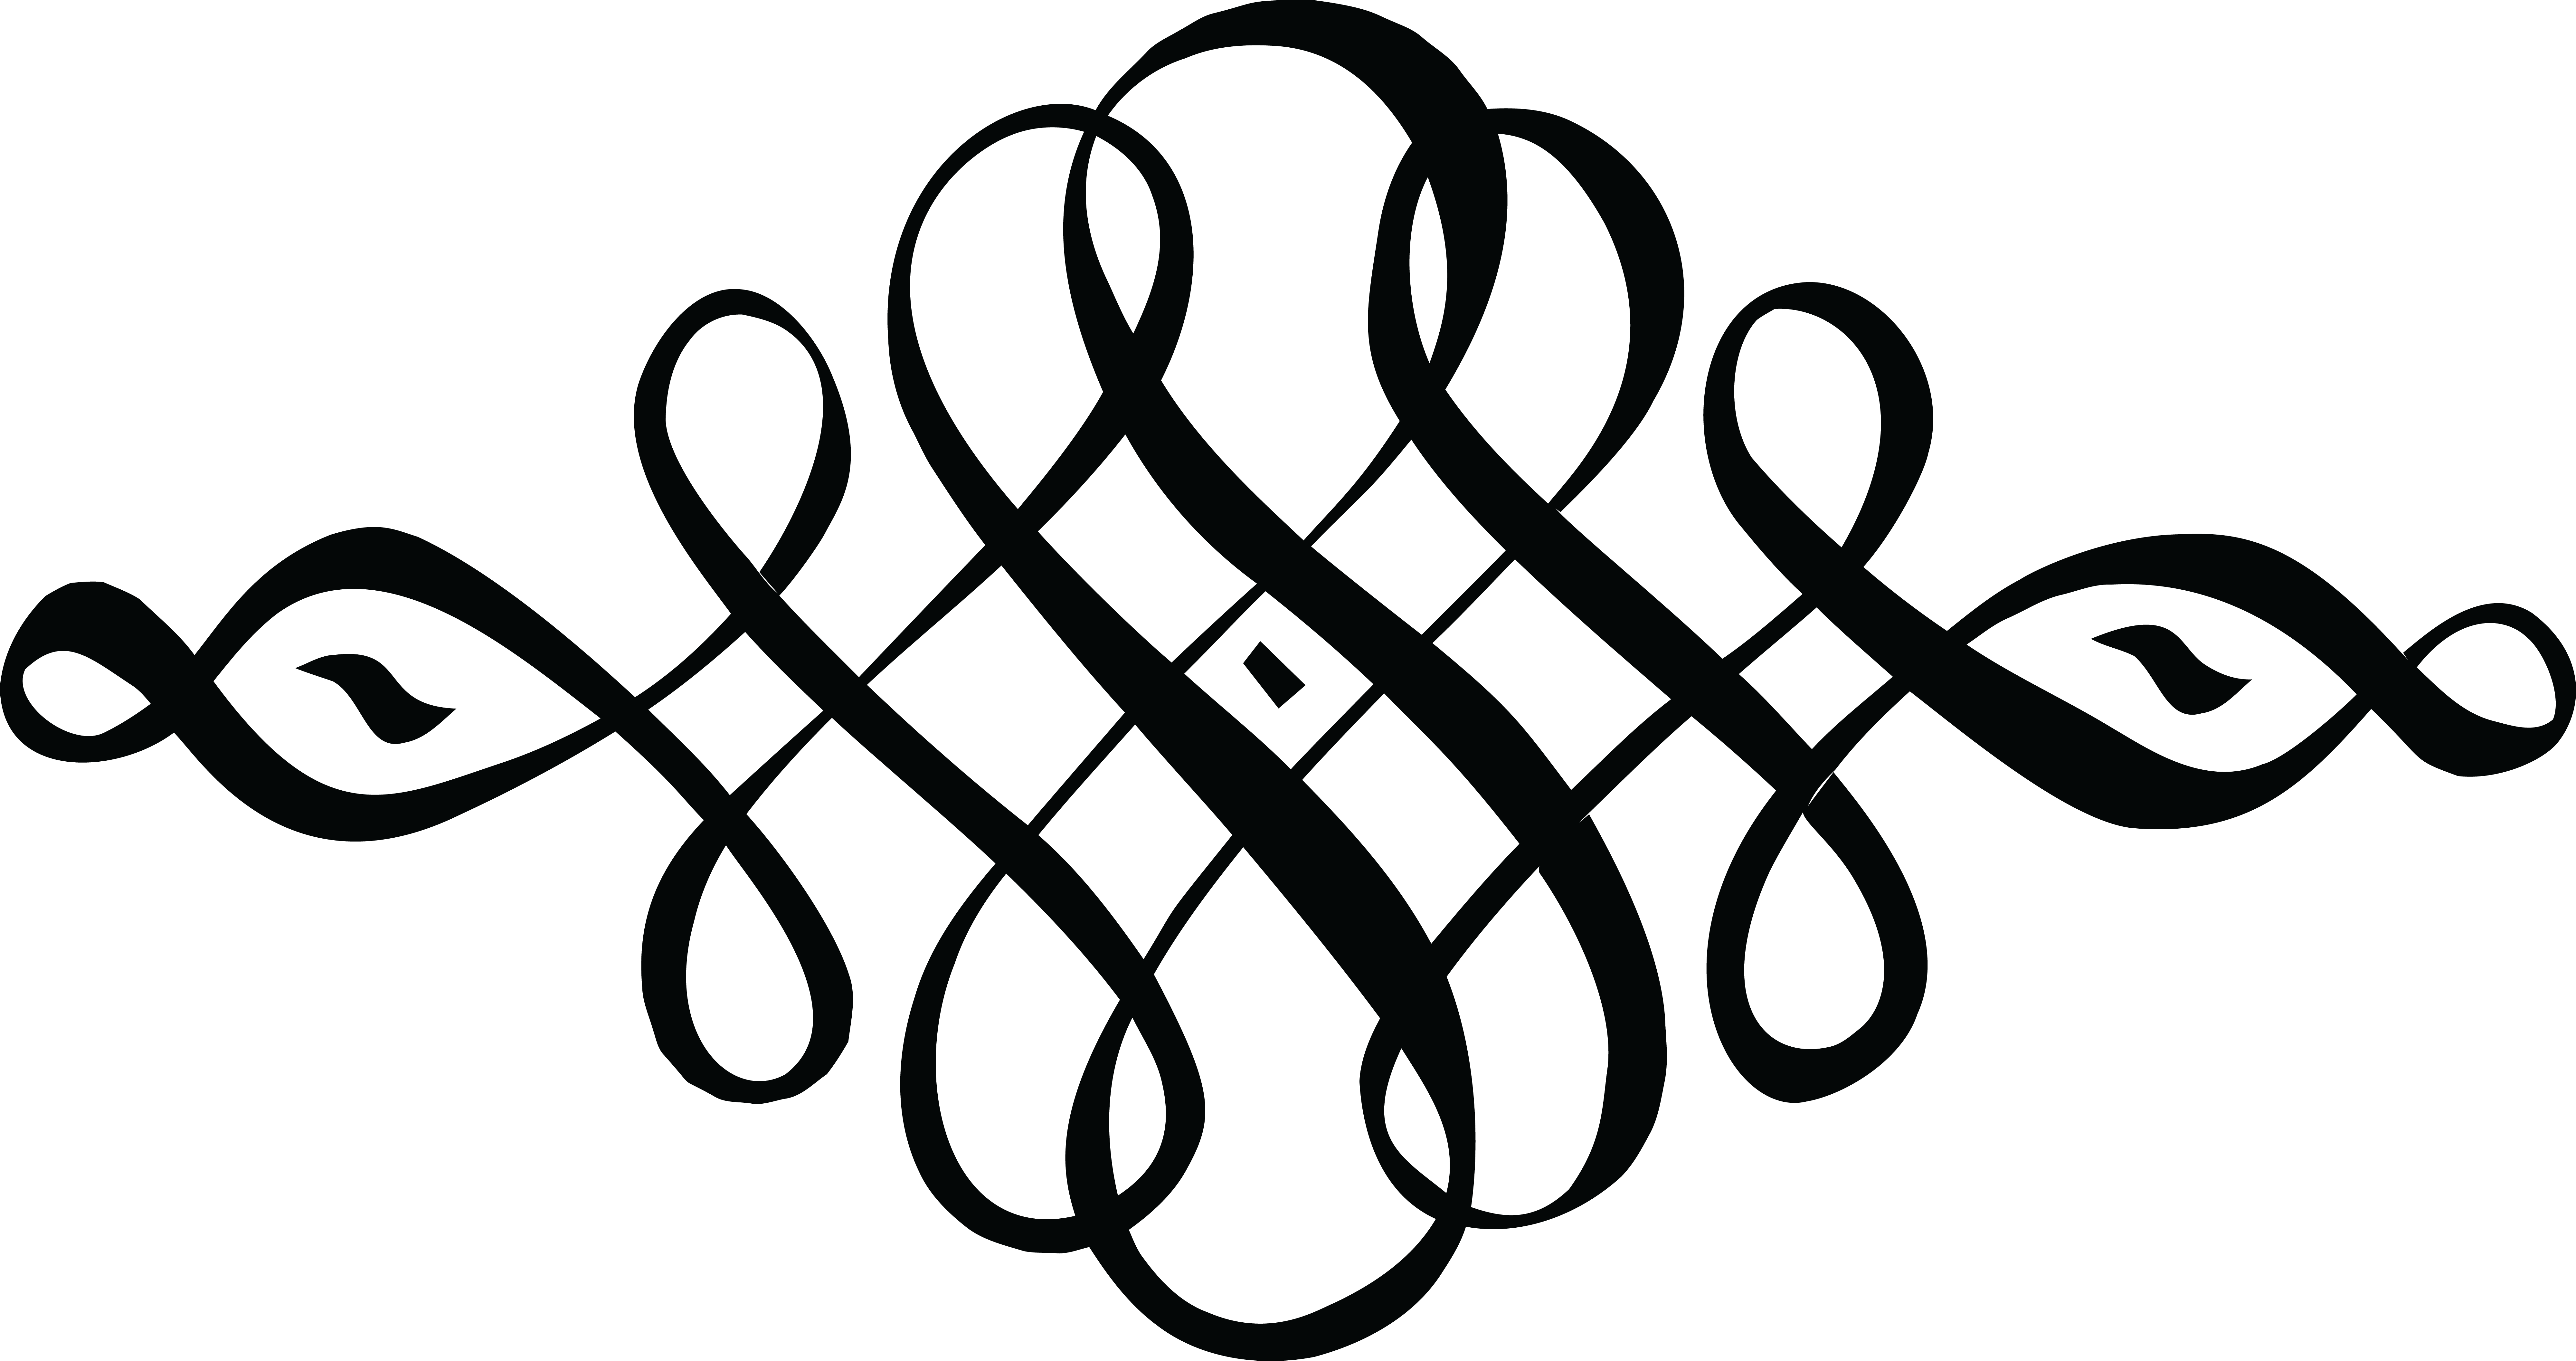 Download Free Clipart Of A Black And White Calligraphic.